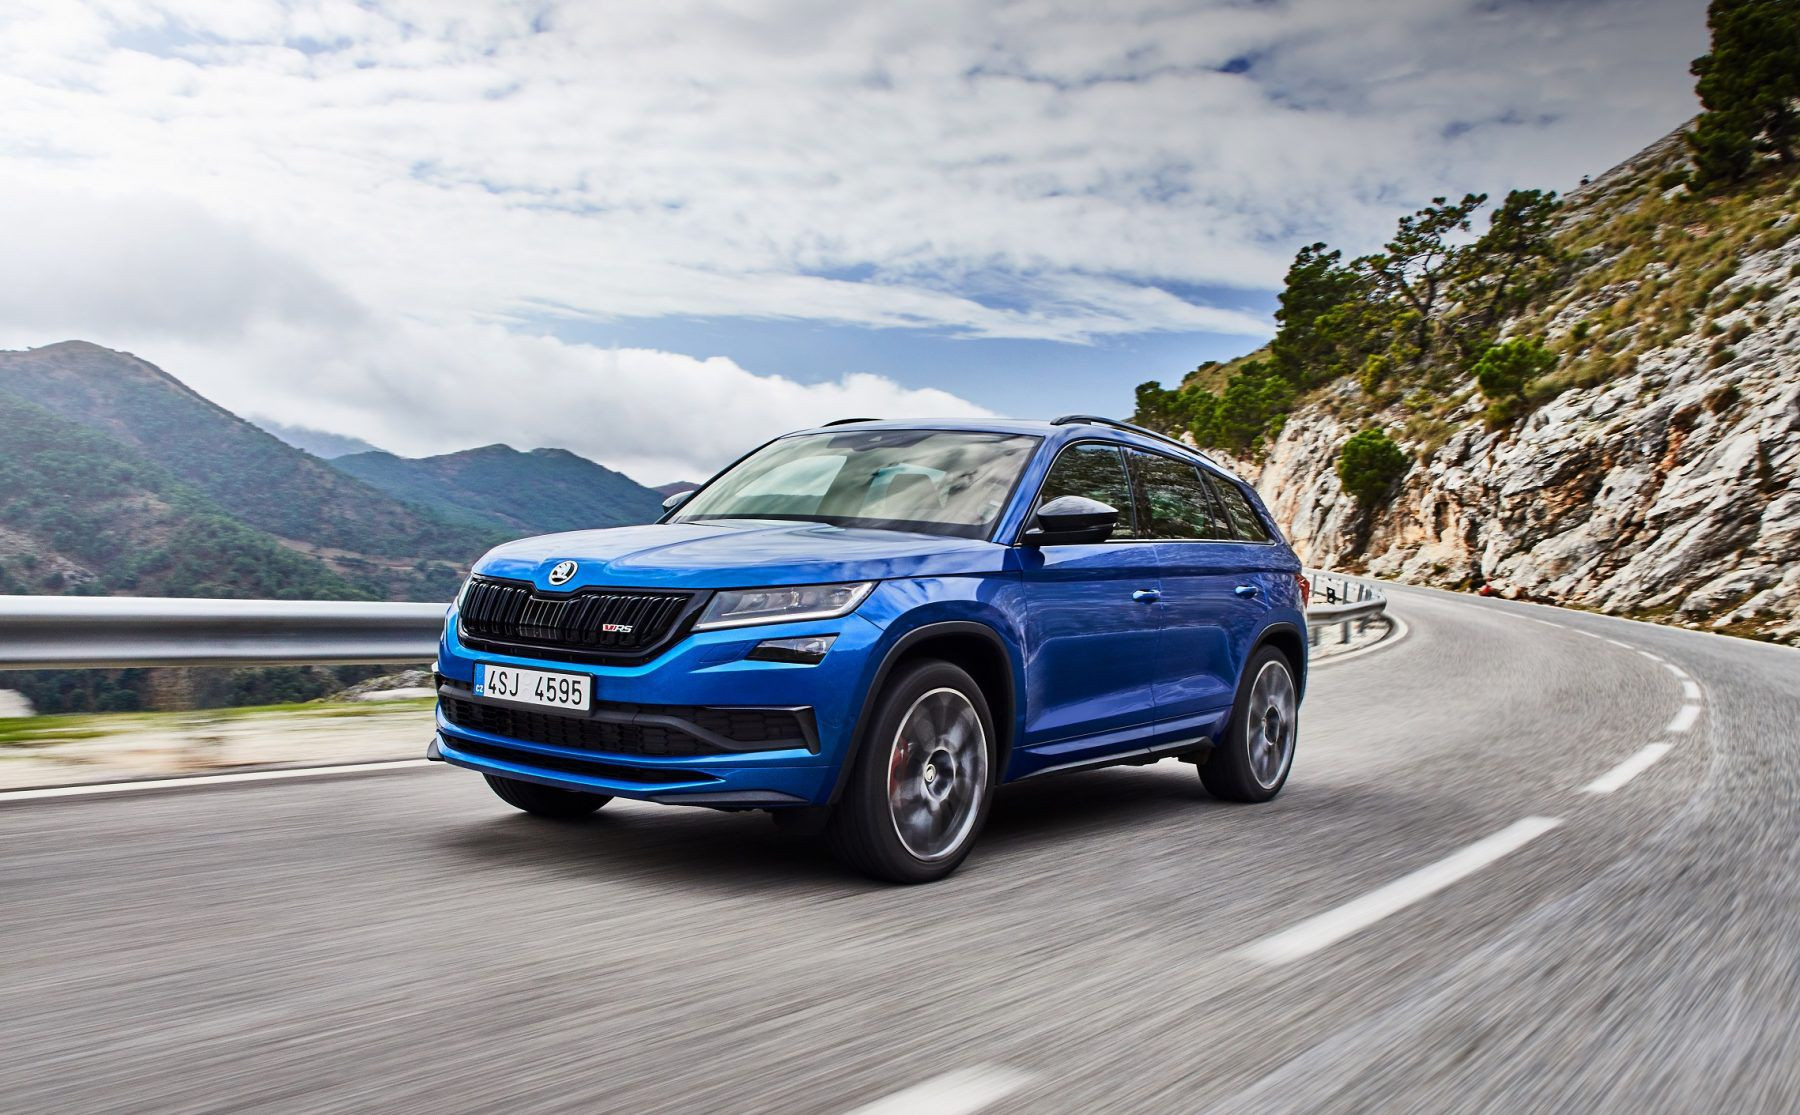 Front view of a blue Skoda Kodiaq driving on a road